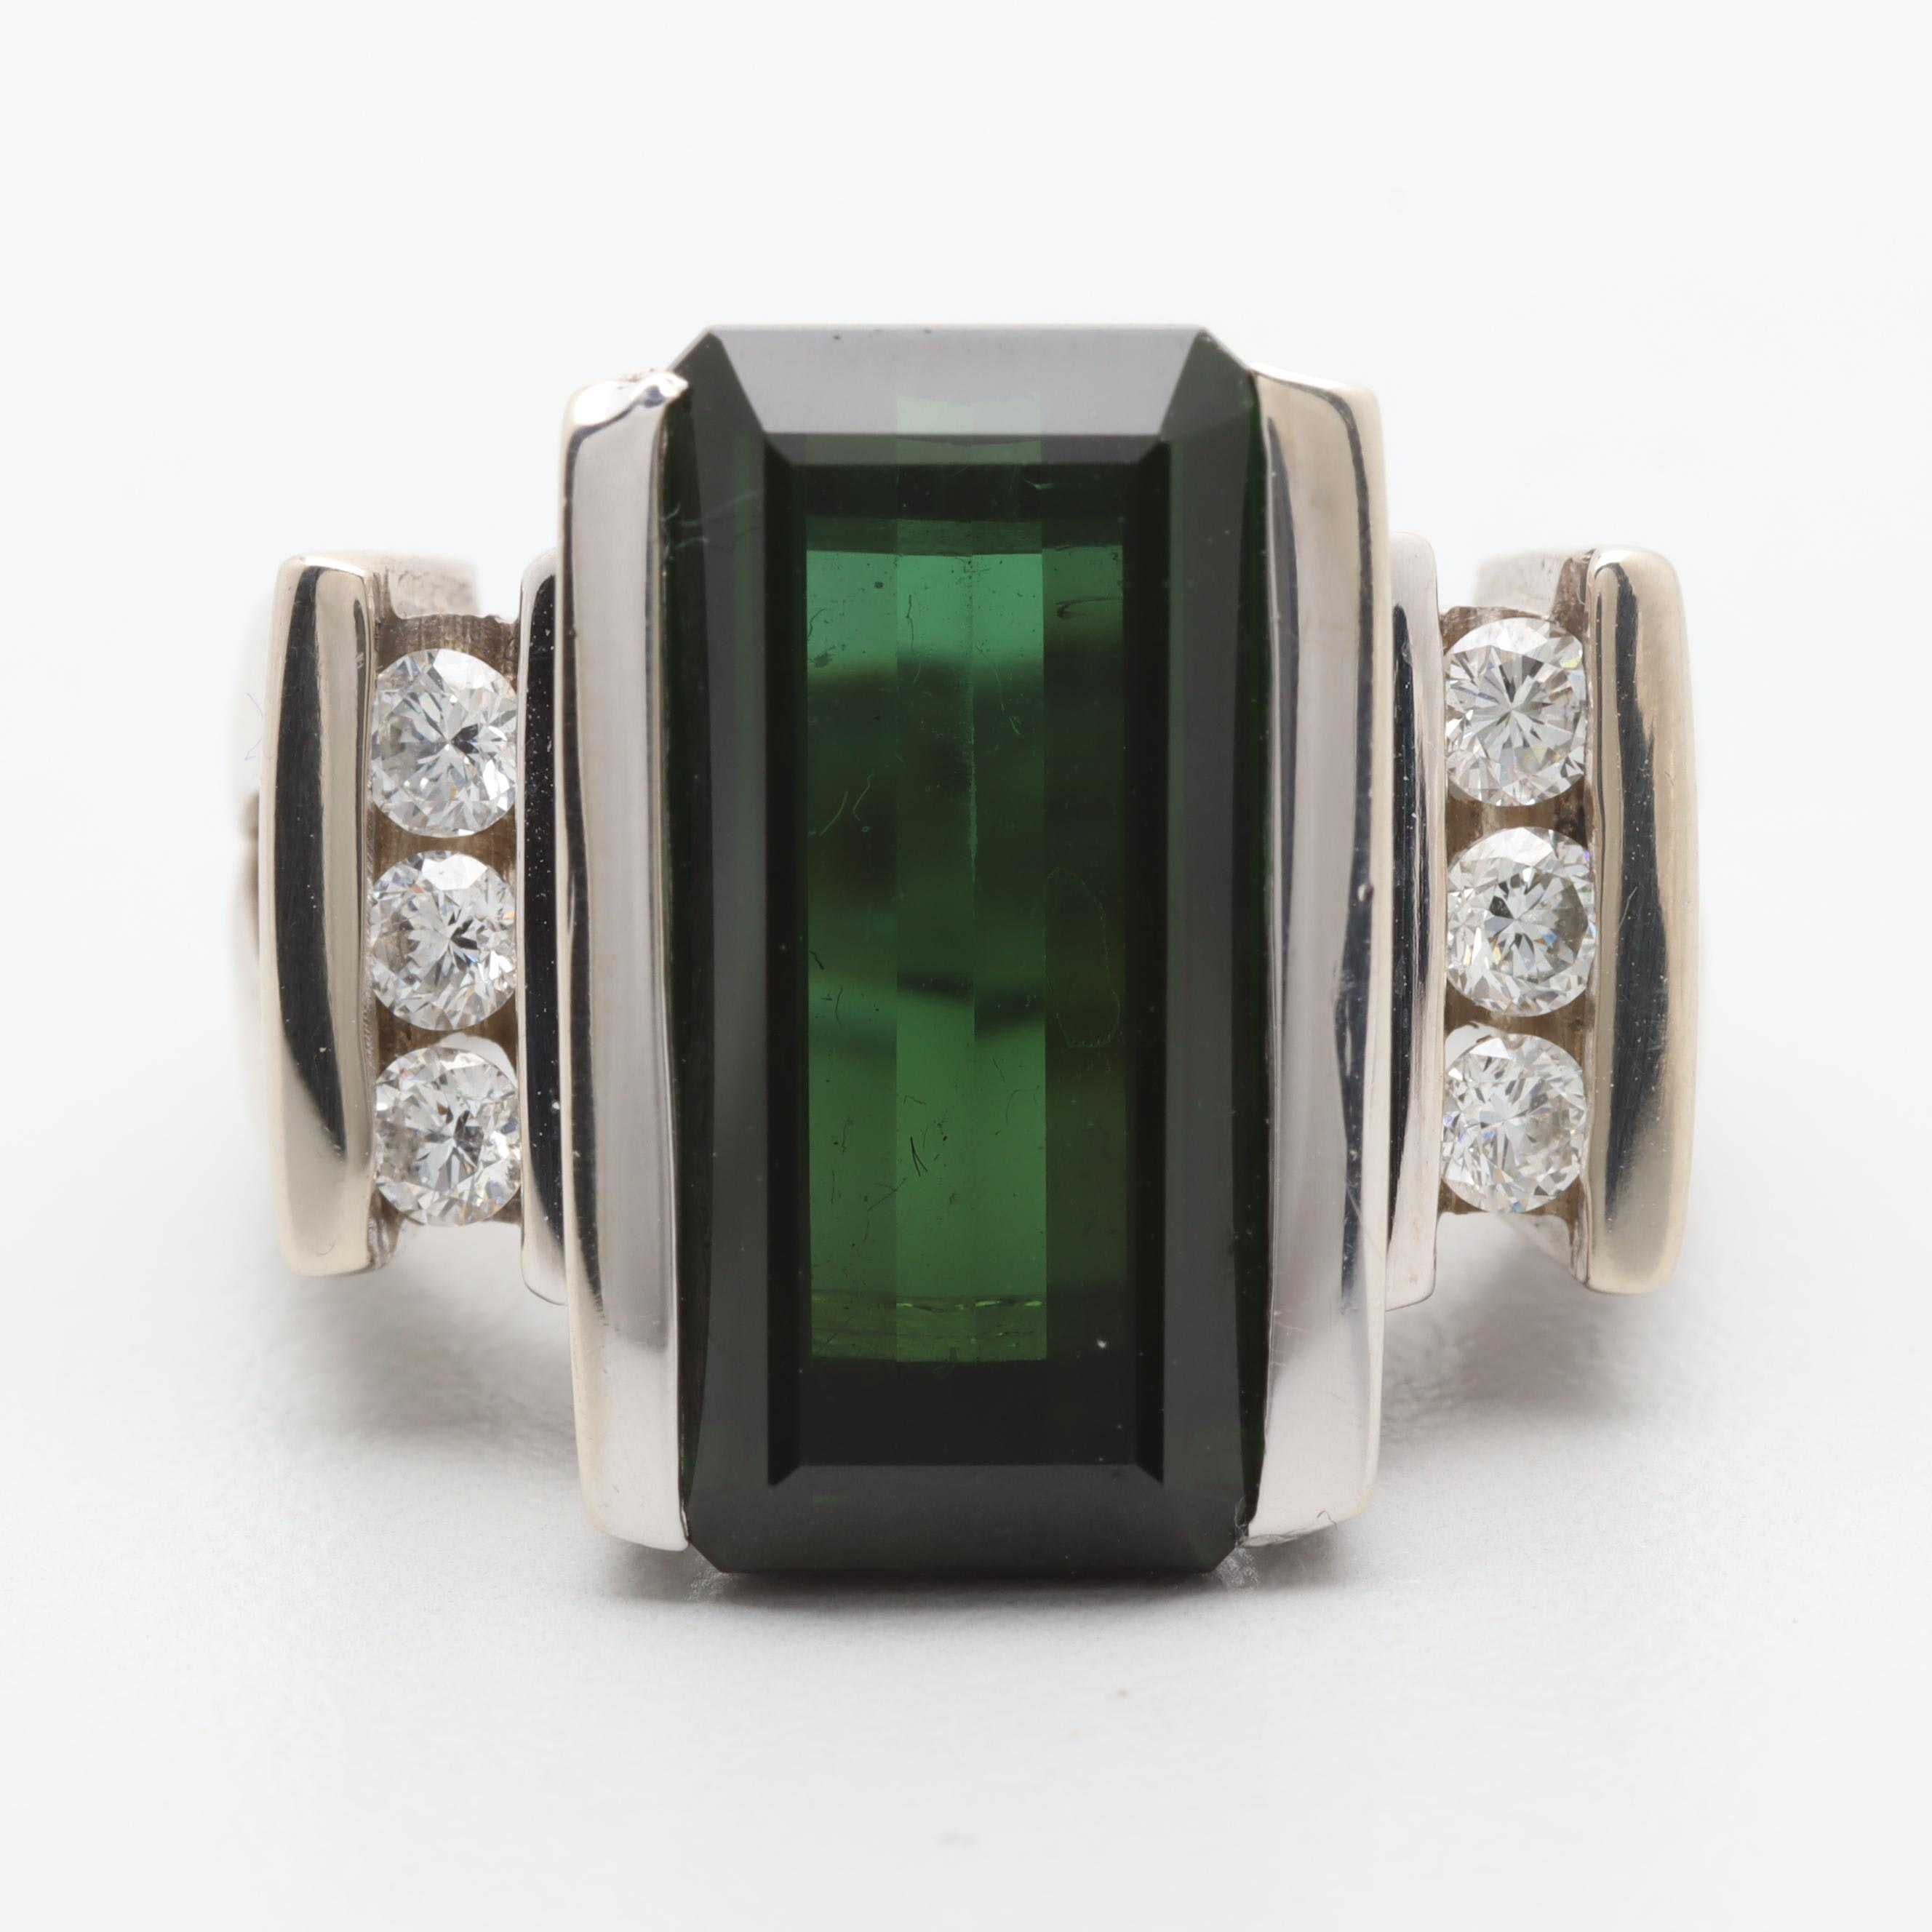 14K White Gold 7.14 CT Green Tourmaline and Diamond Ring